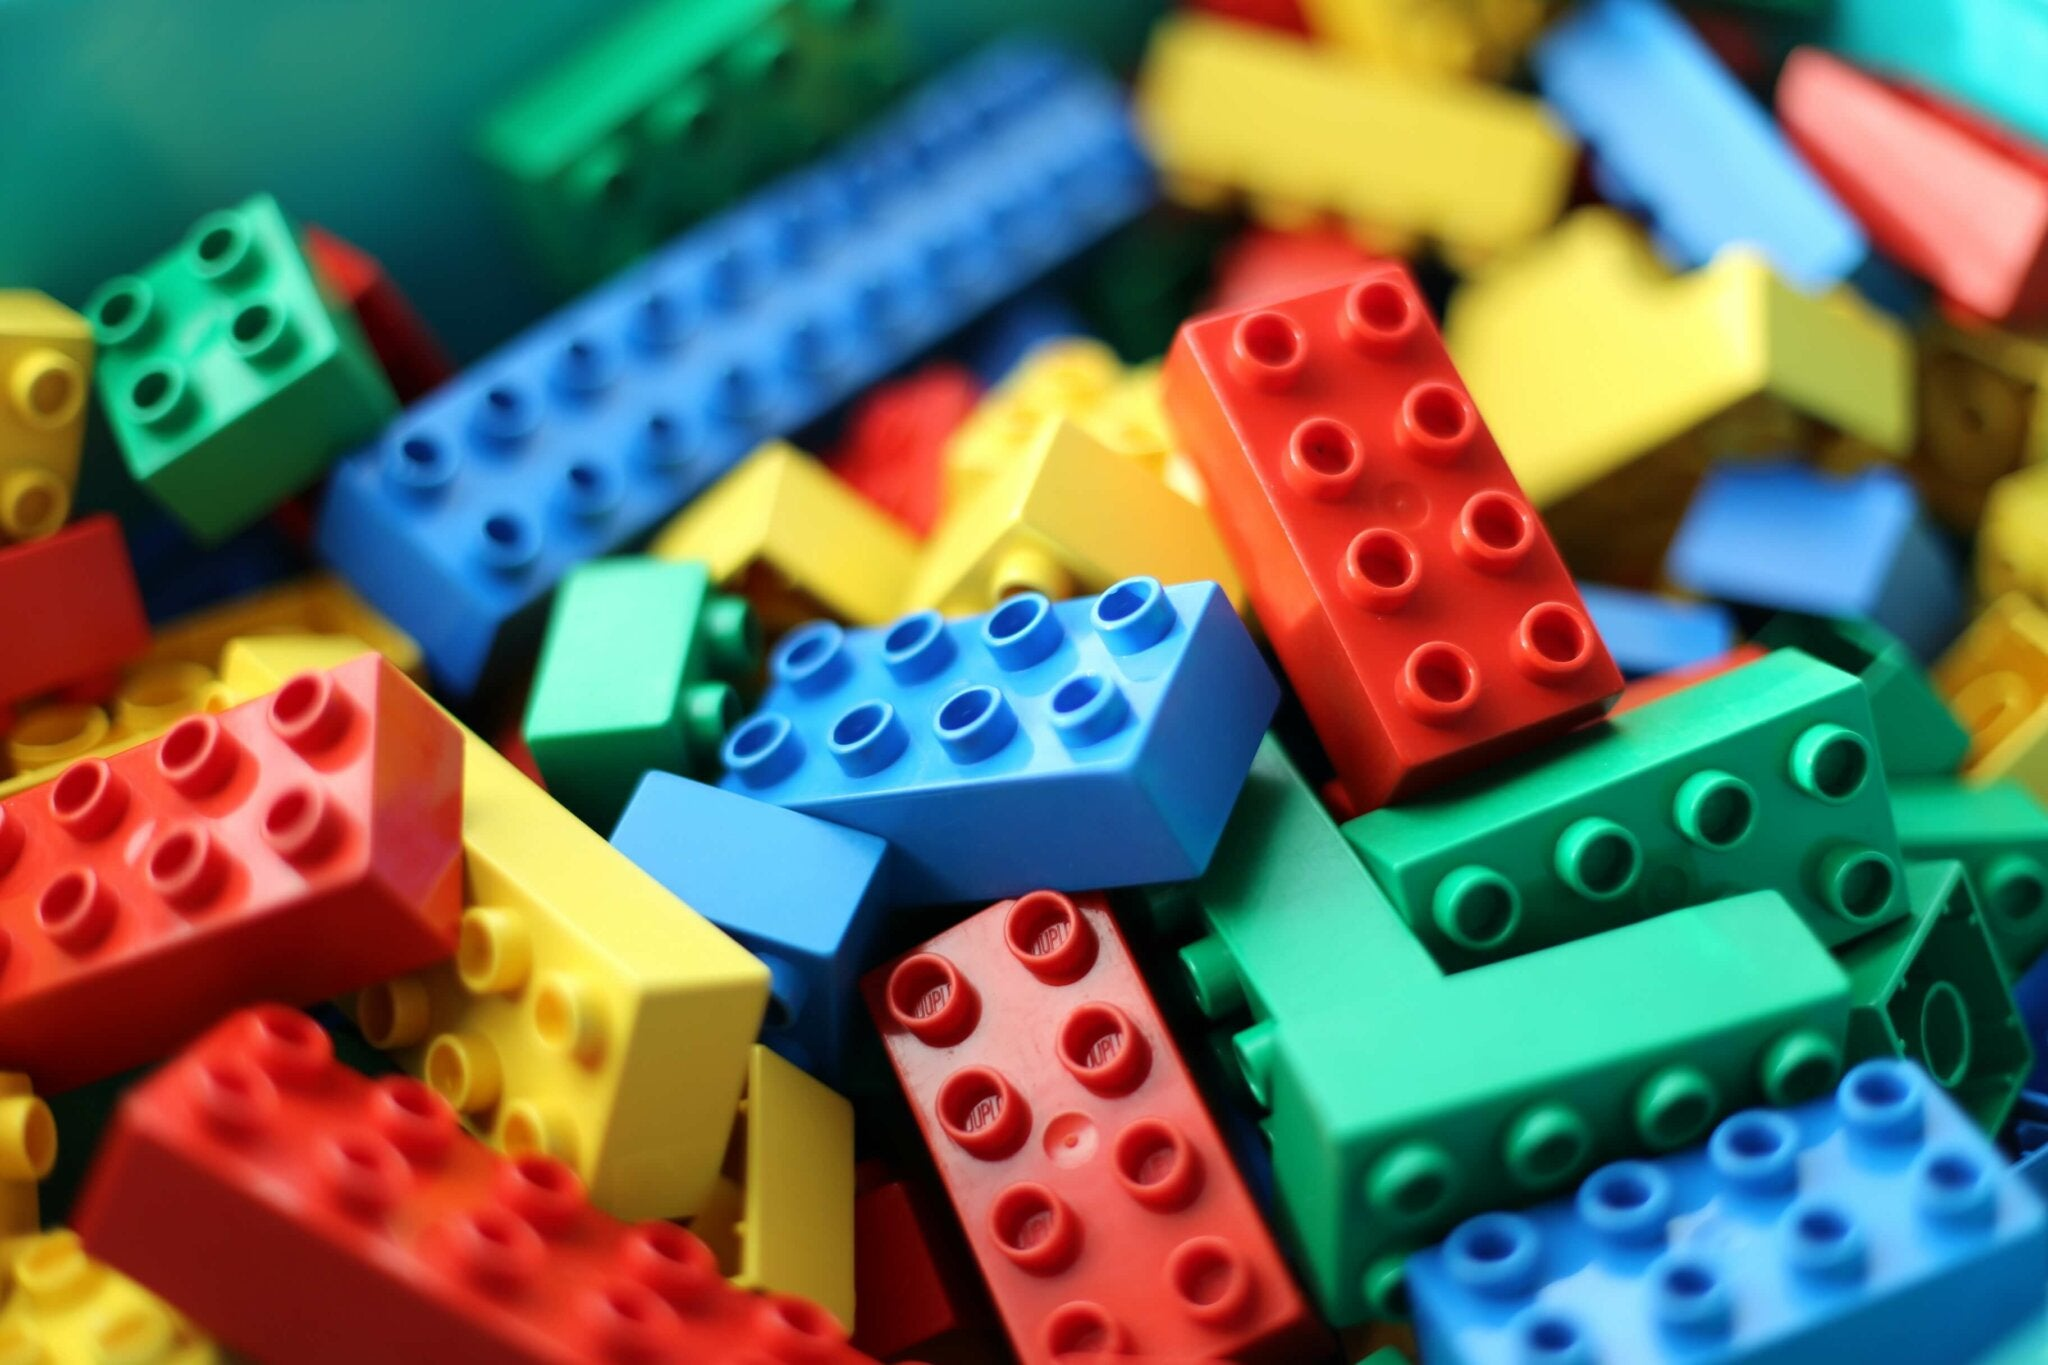 Some Lego bricks.